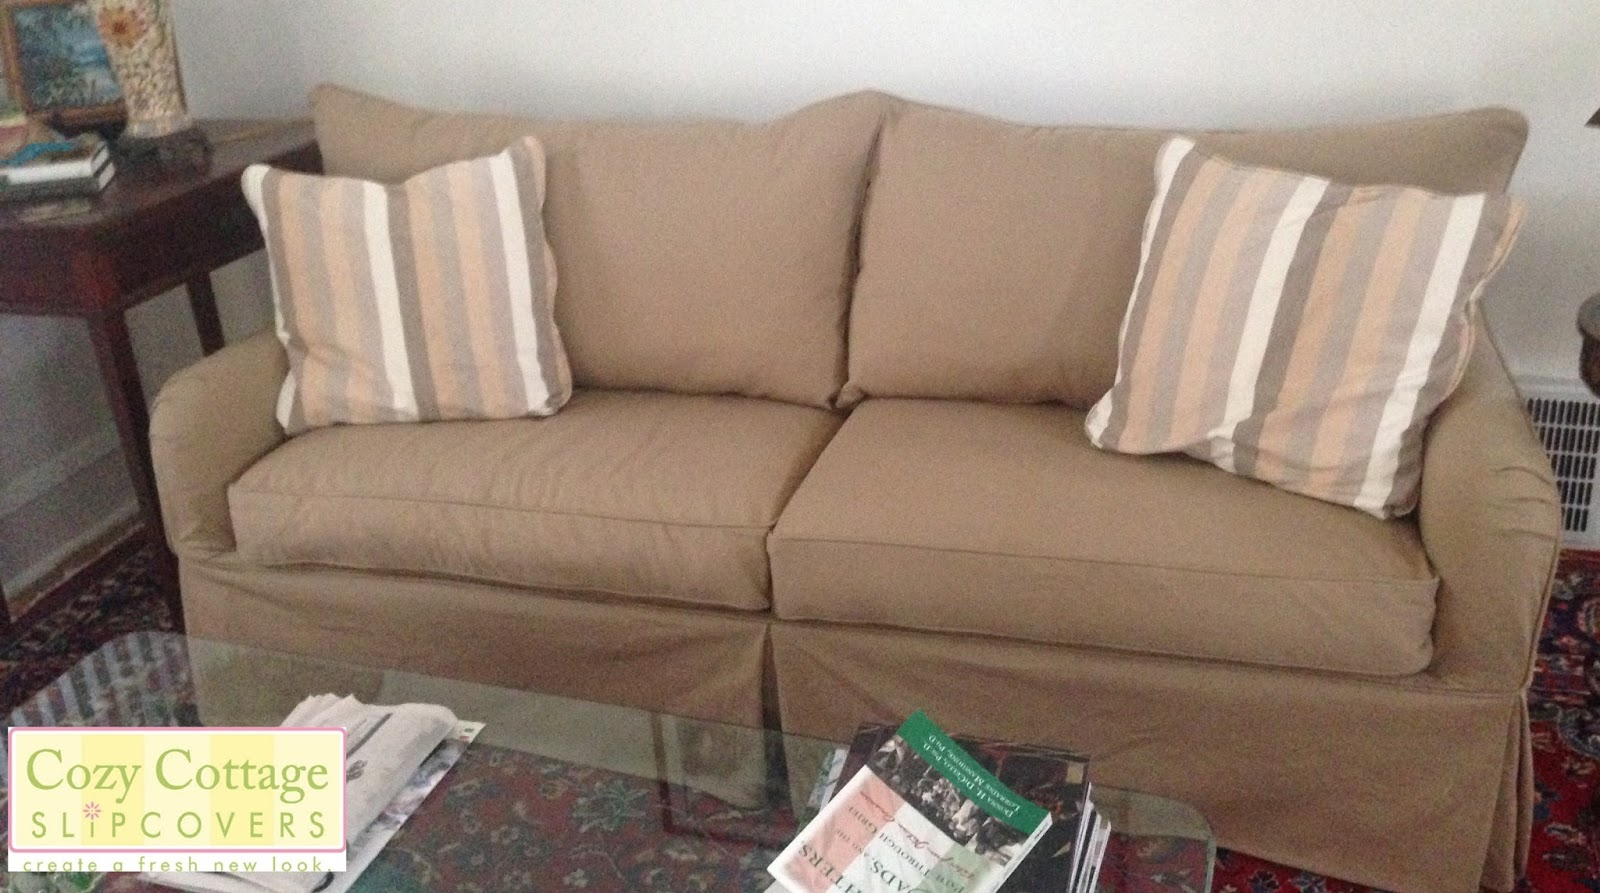 She Chose A Great Solid Cotton Fabric For Her New Slipcovers. The Sofa Will  Be Able To Convert To A Bed Without Removing The Slipcover.